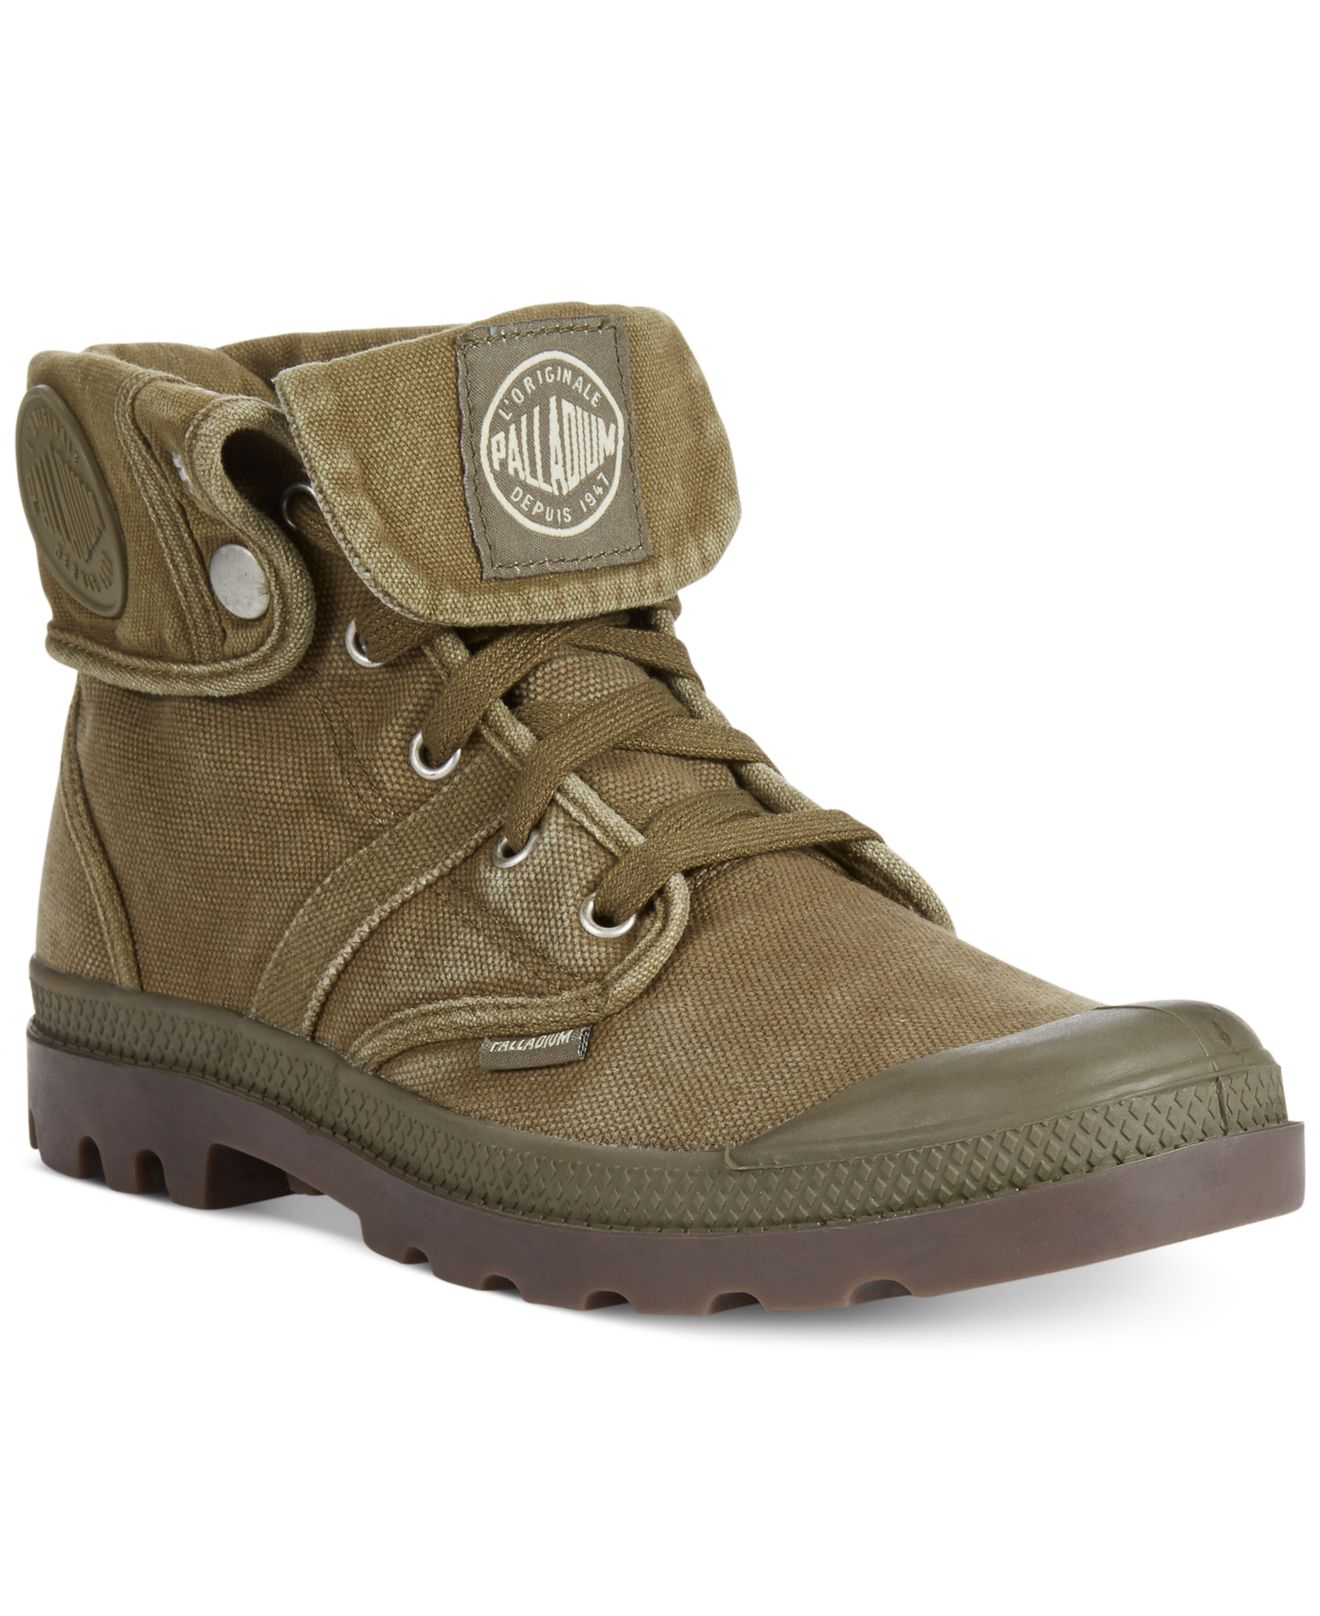 Lyst - Palladium Pallabrouse Baggy Boots in Green for Men 2b587c4907